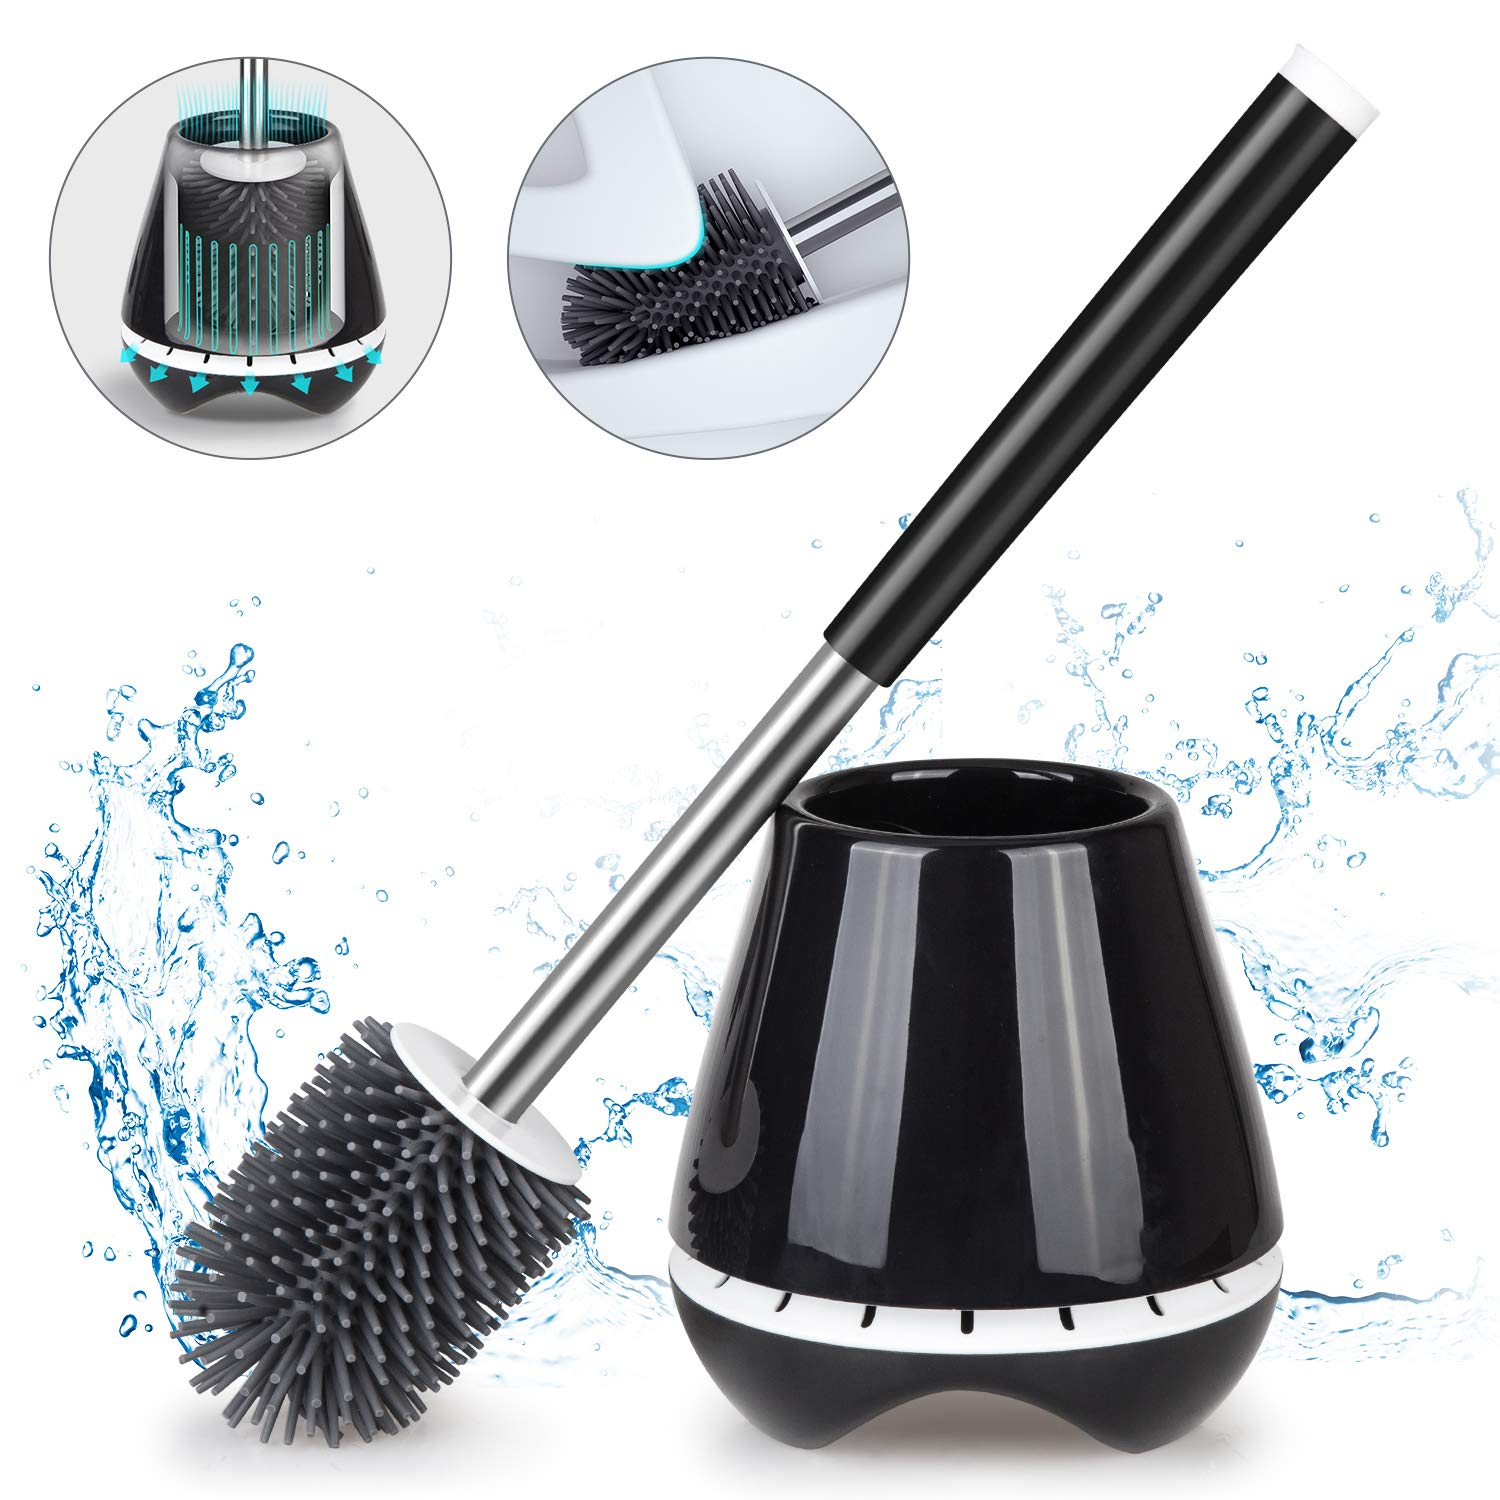 MEXERRIS Toilet Brush and Holder Set for Bathroom with Soft Silicone Bristle Sturdy Cleaning Toilet Bowl Brush Set for Bathroom Storage and Organization - Tweezers Included (Black) by MEXERRIS